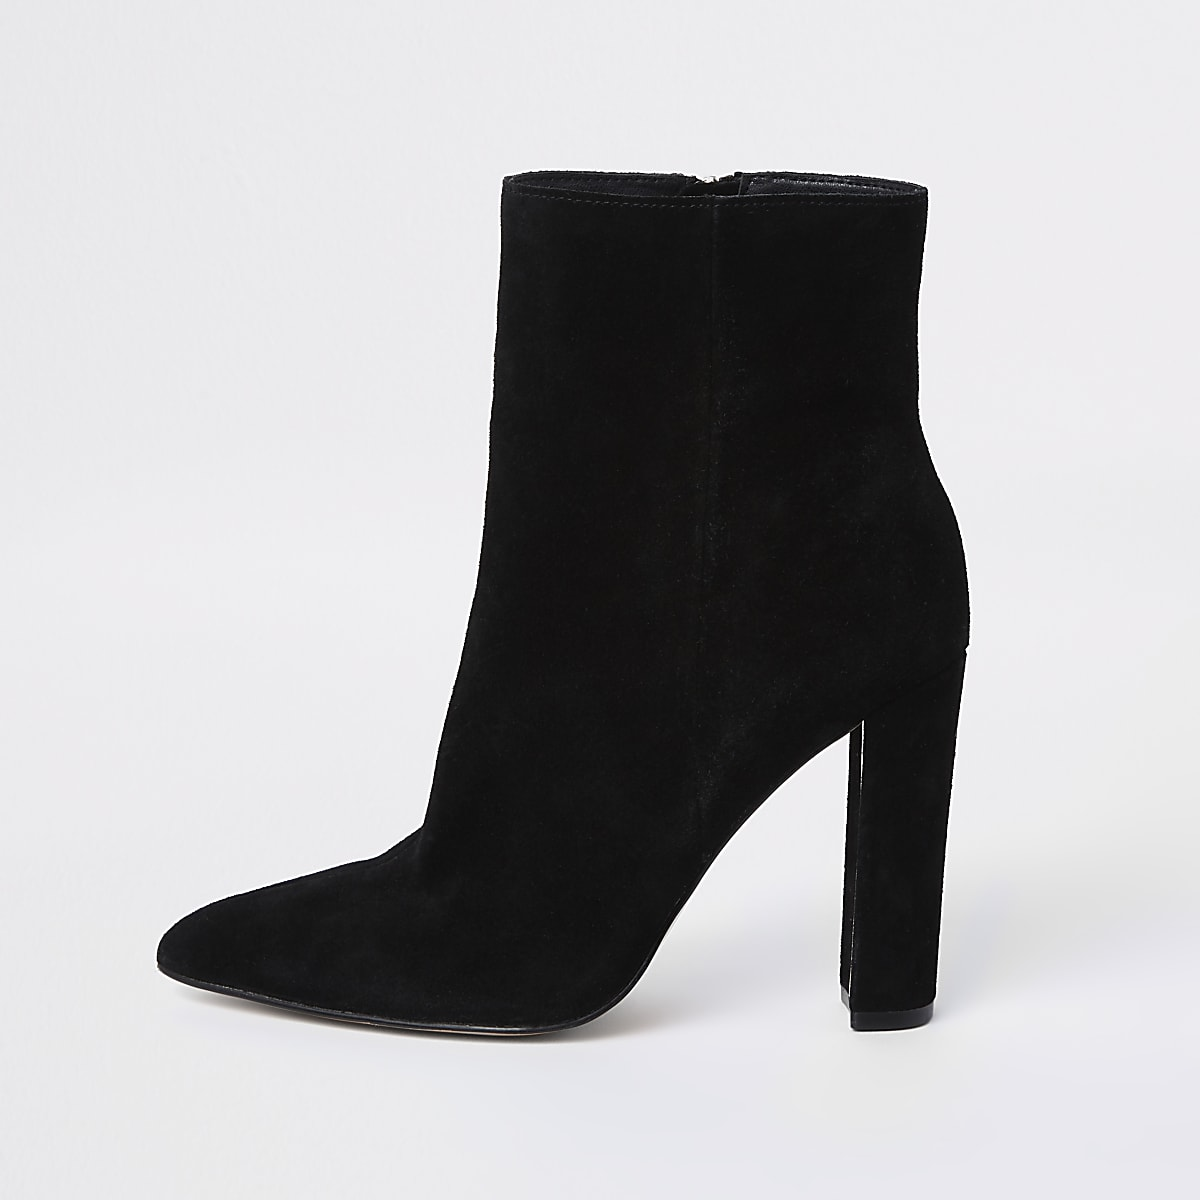 41c374f459b Black suede pointed toe block heel boot - Boots - Shoes   Boots - women